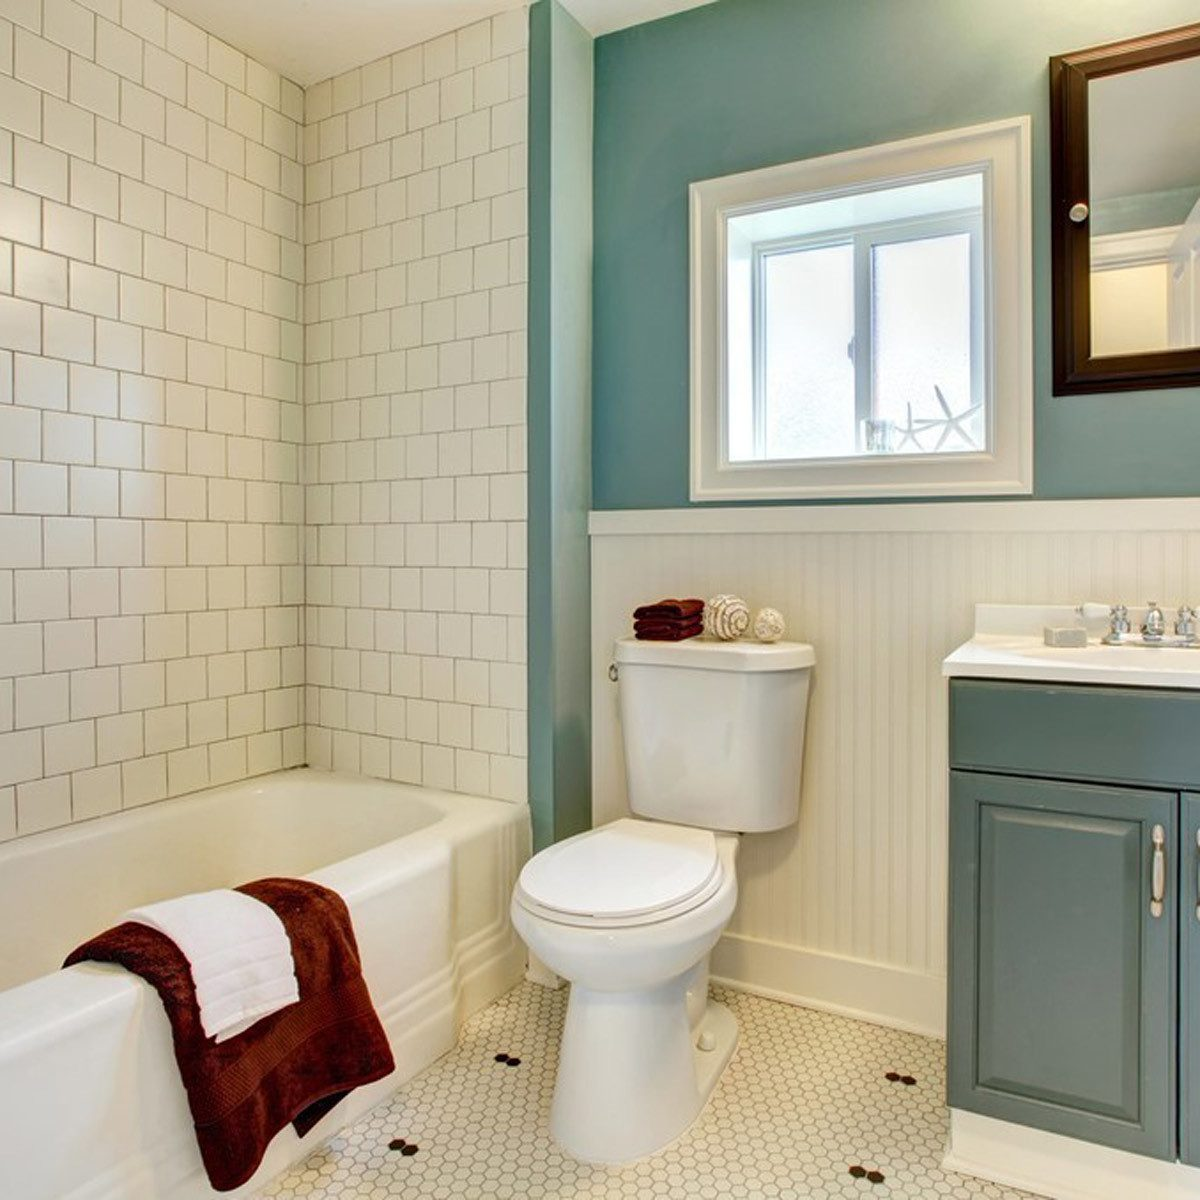 13 Tile Tips for Better Bathroom Tile — The Family Handyman